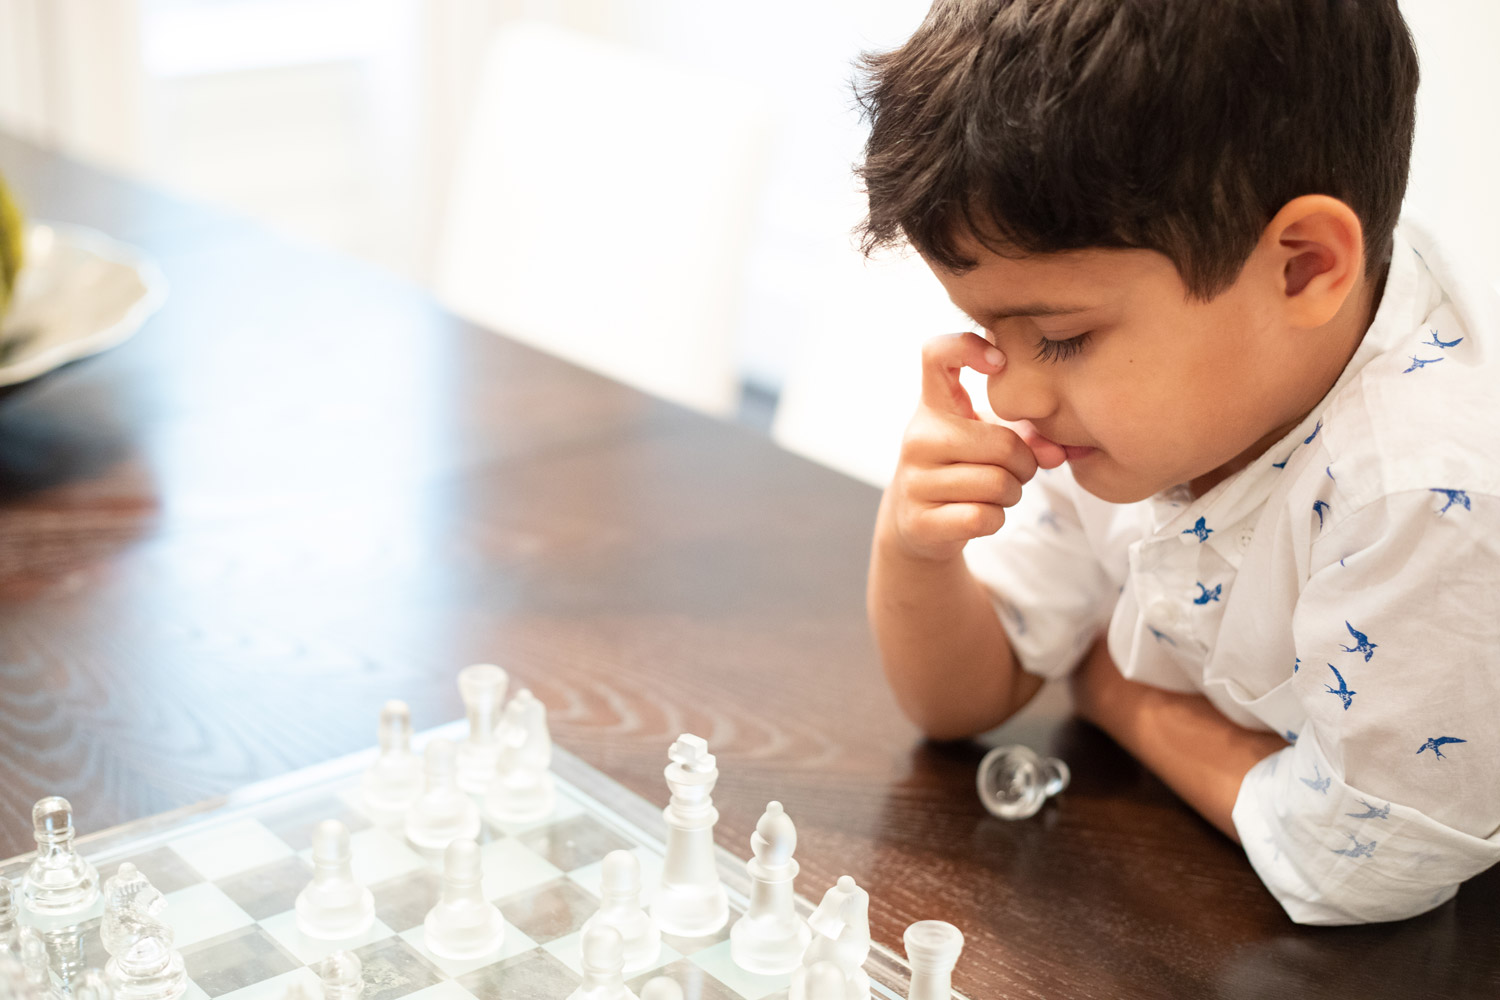 houston-family-lifestyle-photography-son-contemplating-chess-move.jpg